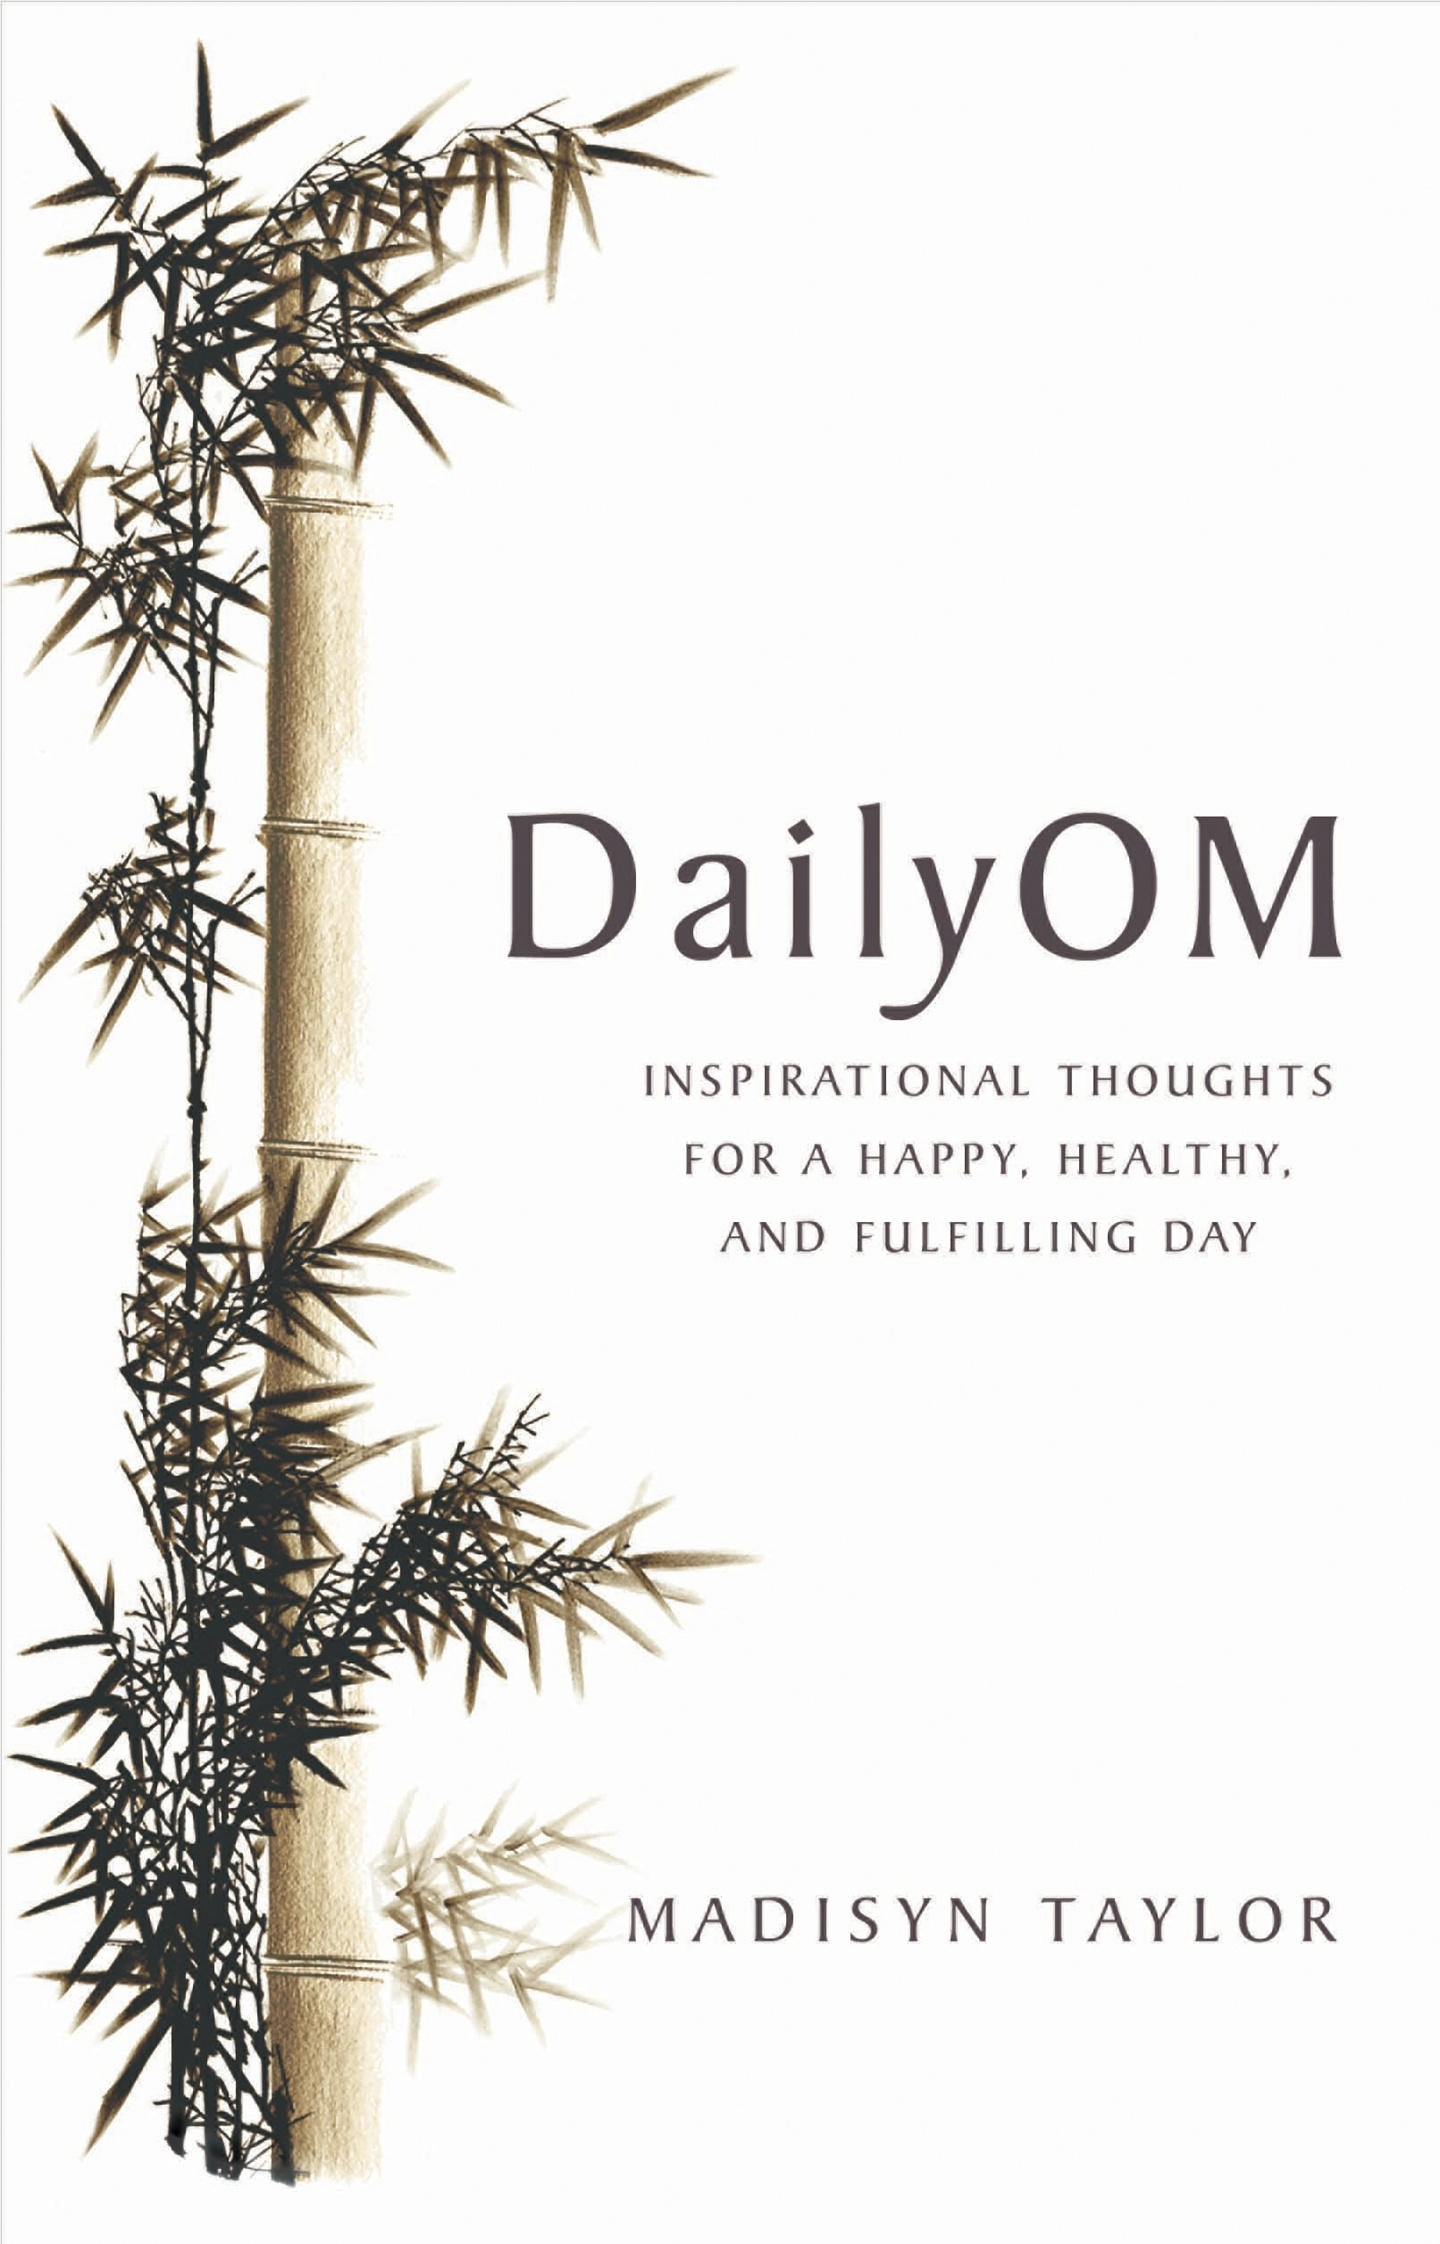 Daily OM: Inspirational Thoughts for a Happy, Healthy and Fulfilling Day